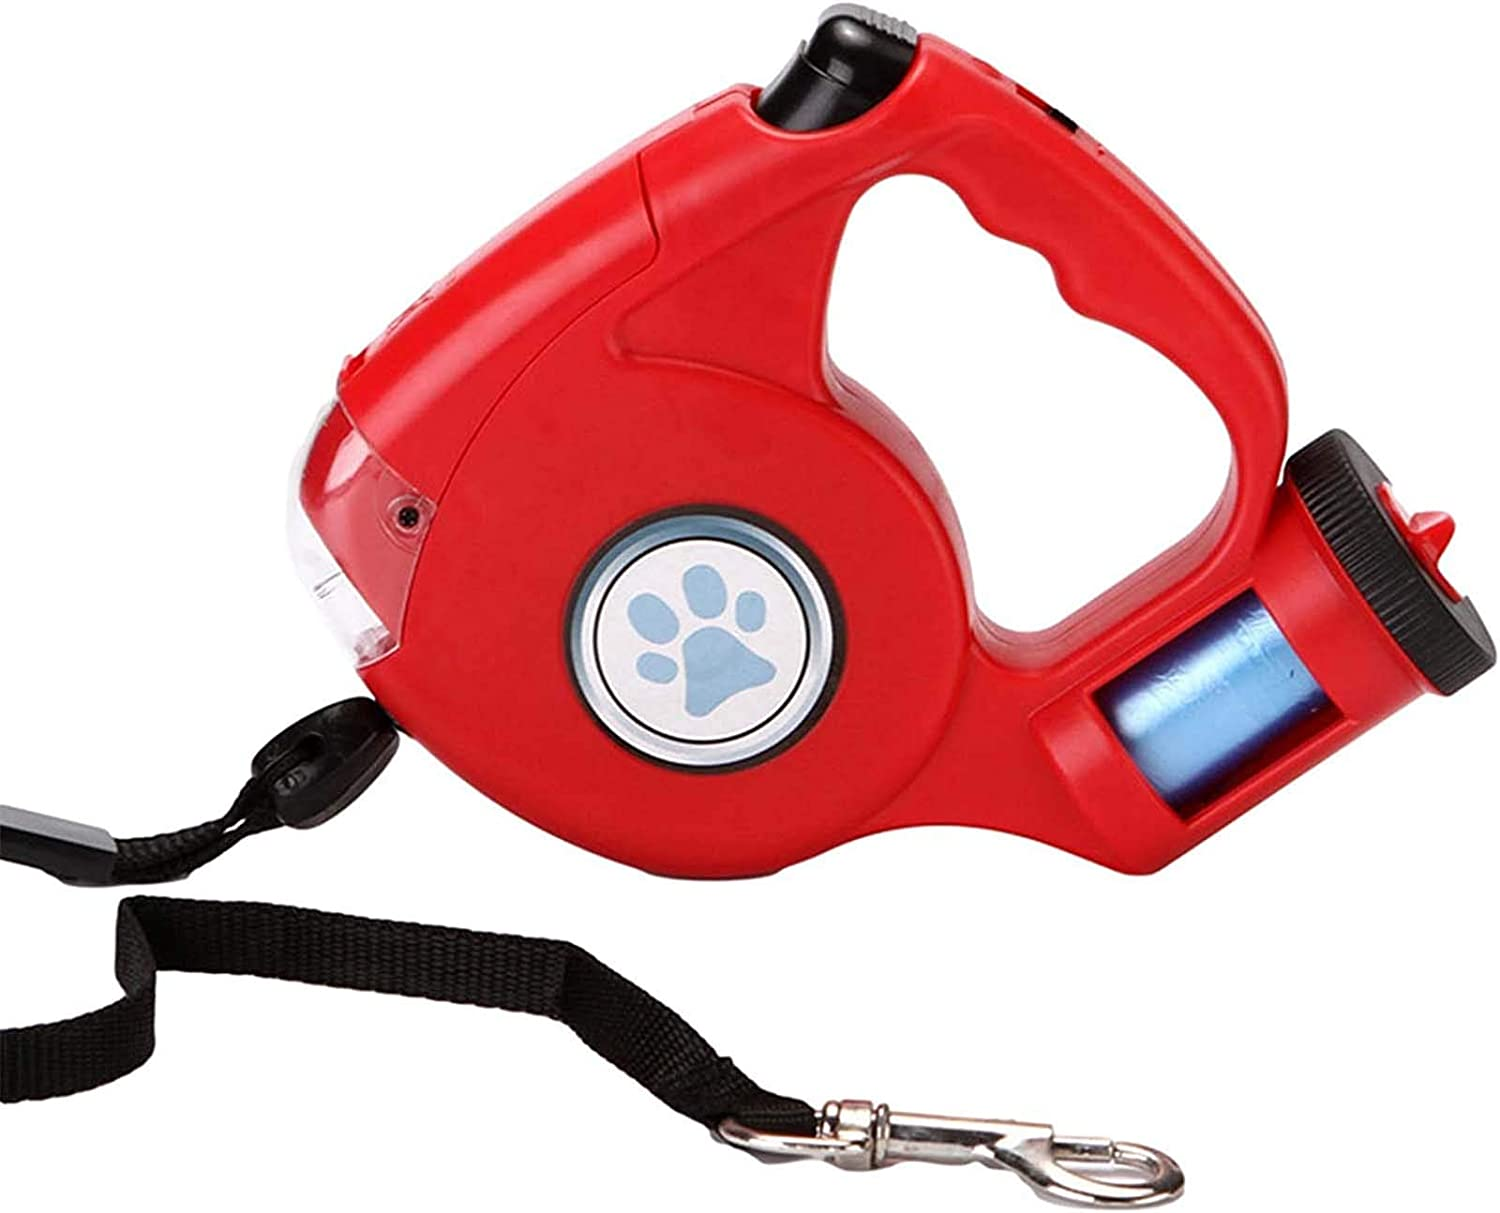 QDY -5M 16FT Retractable Seattle Mall Dog Puppy Automatic Leash Colorado Springs Mall Extendable